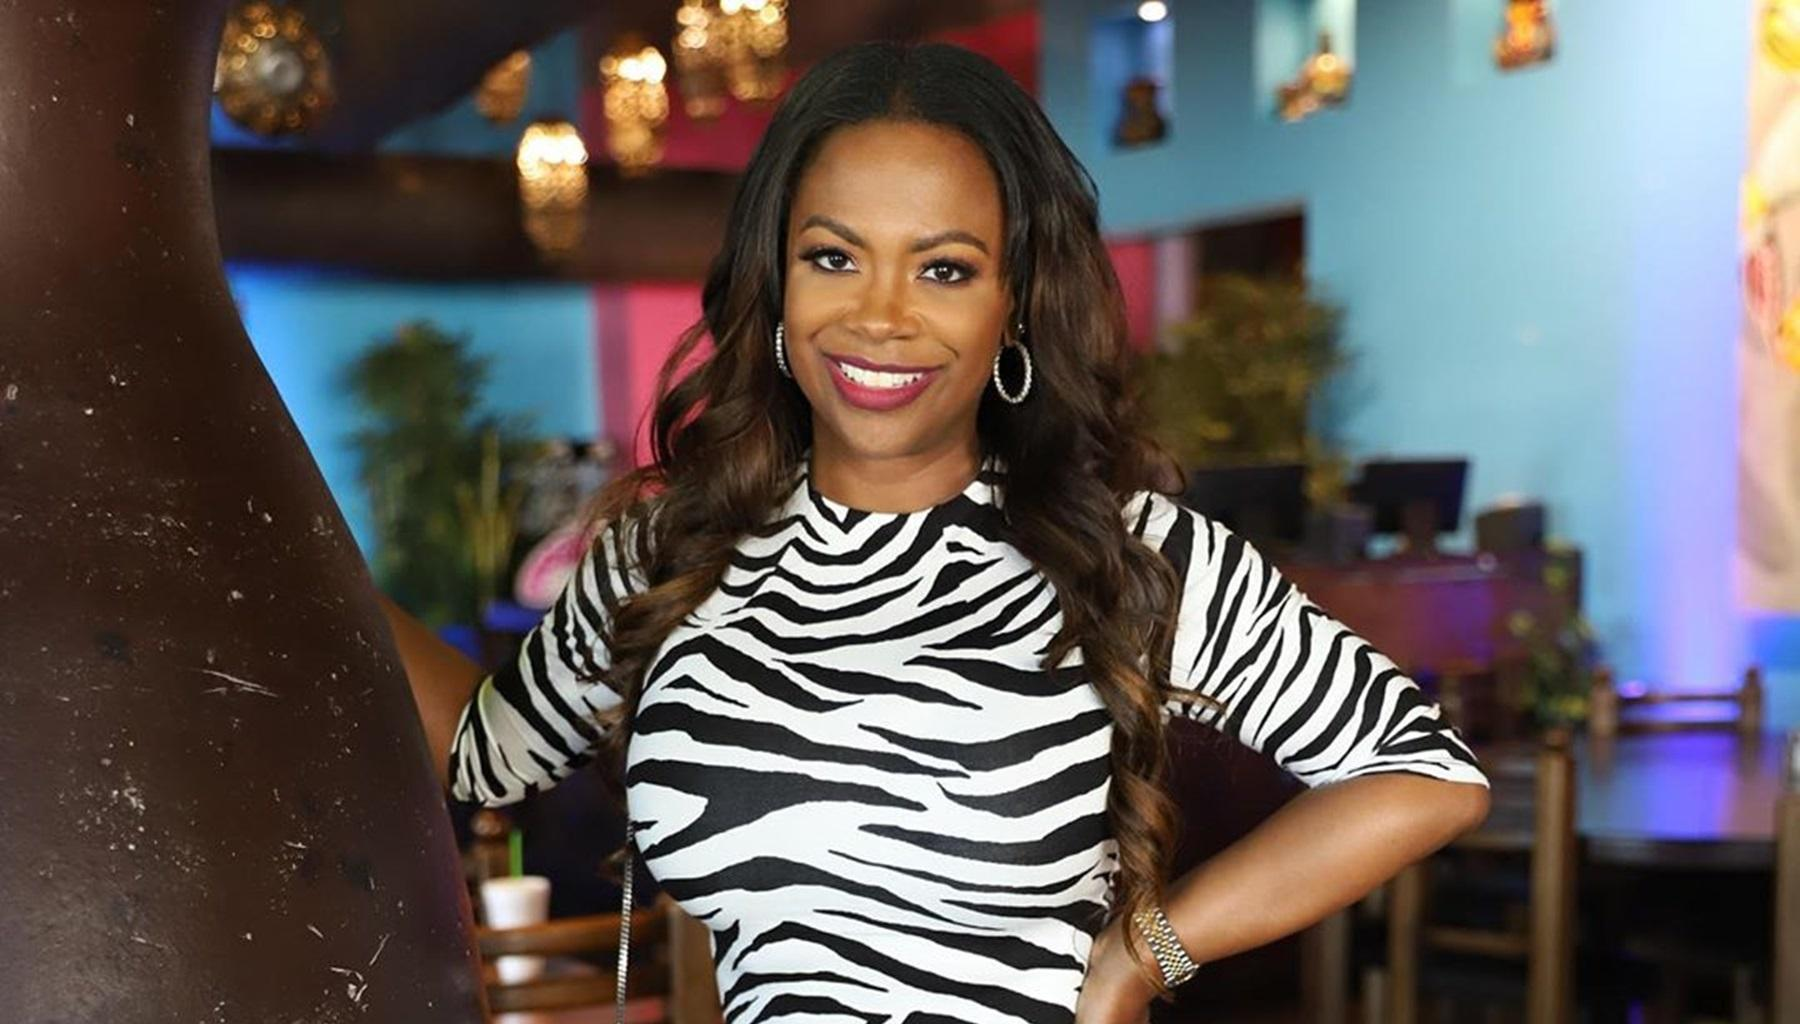 Kandi Burruss' Husband, Todd Tucker, Is Not Shy To Reveal The Part Of Her Body He Loves The Most